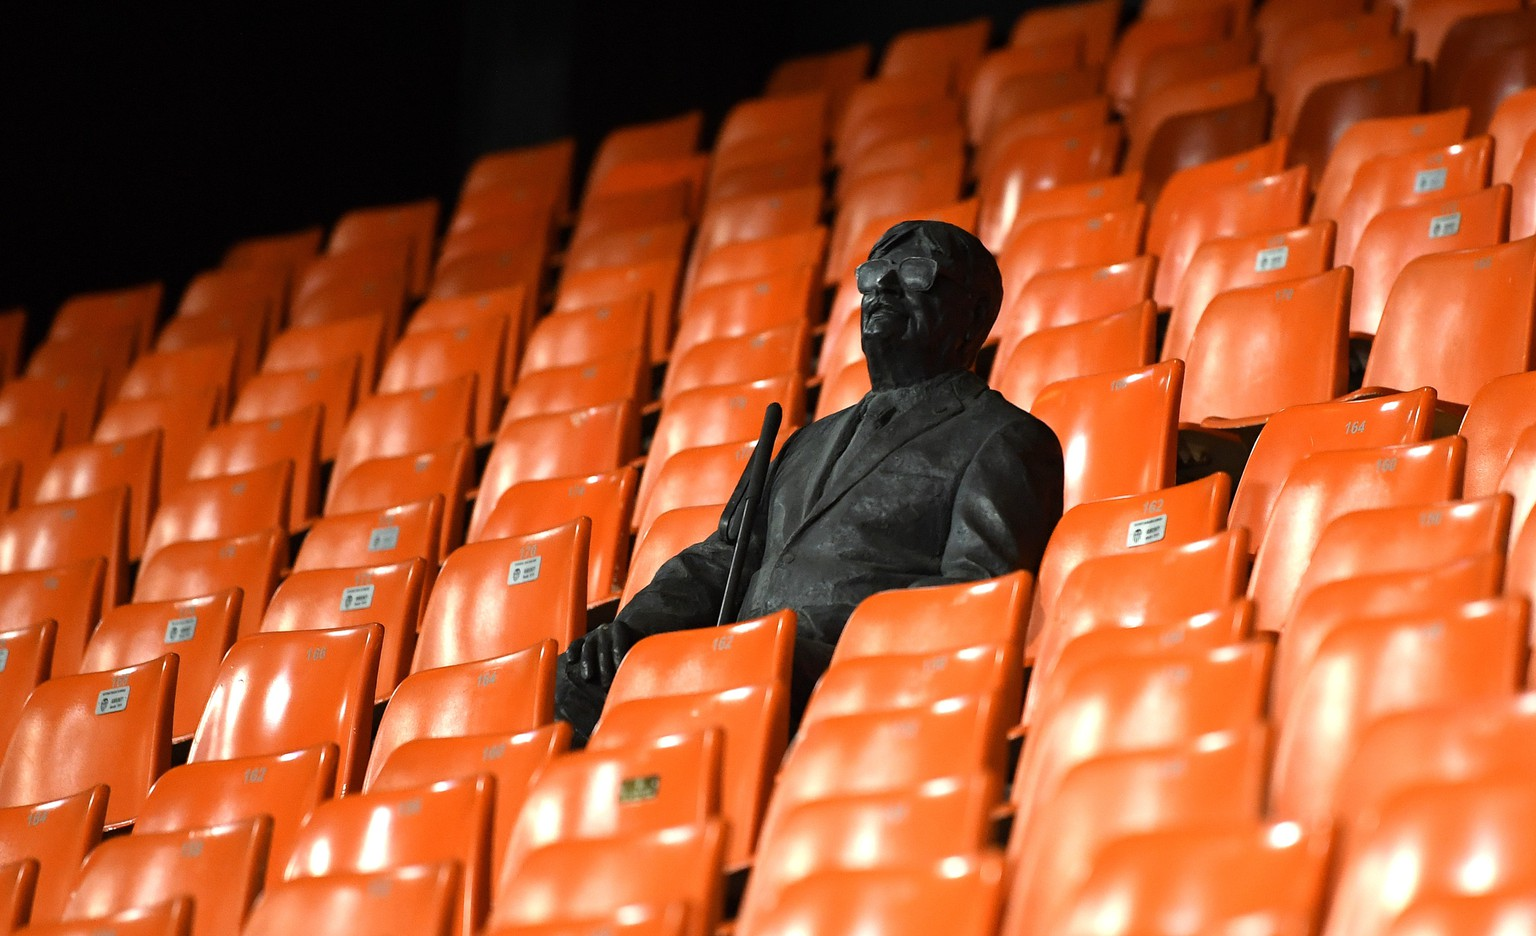 epa08284359 A handout image provided by UEFA shows a statue in the stands representing a former fan ahead of the UEFA Champions League round of 16 second leg match between Valencia CF and Atalanta BC at Estadio Mestalla in Valencia, Spain, 10 March 2020. The match takes place behind closed doors due to the coronavirus (COVID-19) outbreak.  EPA/UEFA / HO **SHUTTERSTOCK OUT** HANDOUT NO SALES/NO ARCHIVES